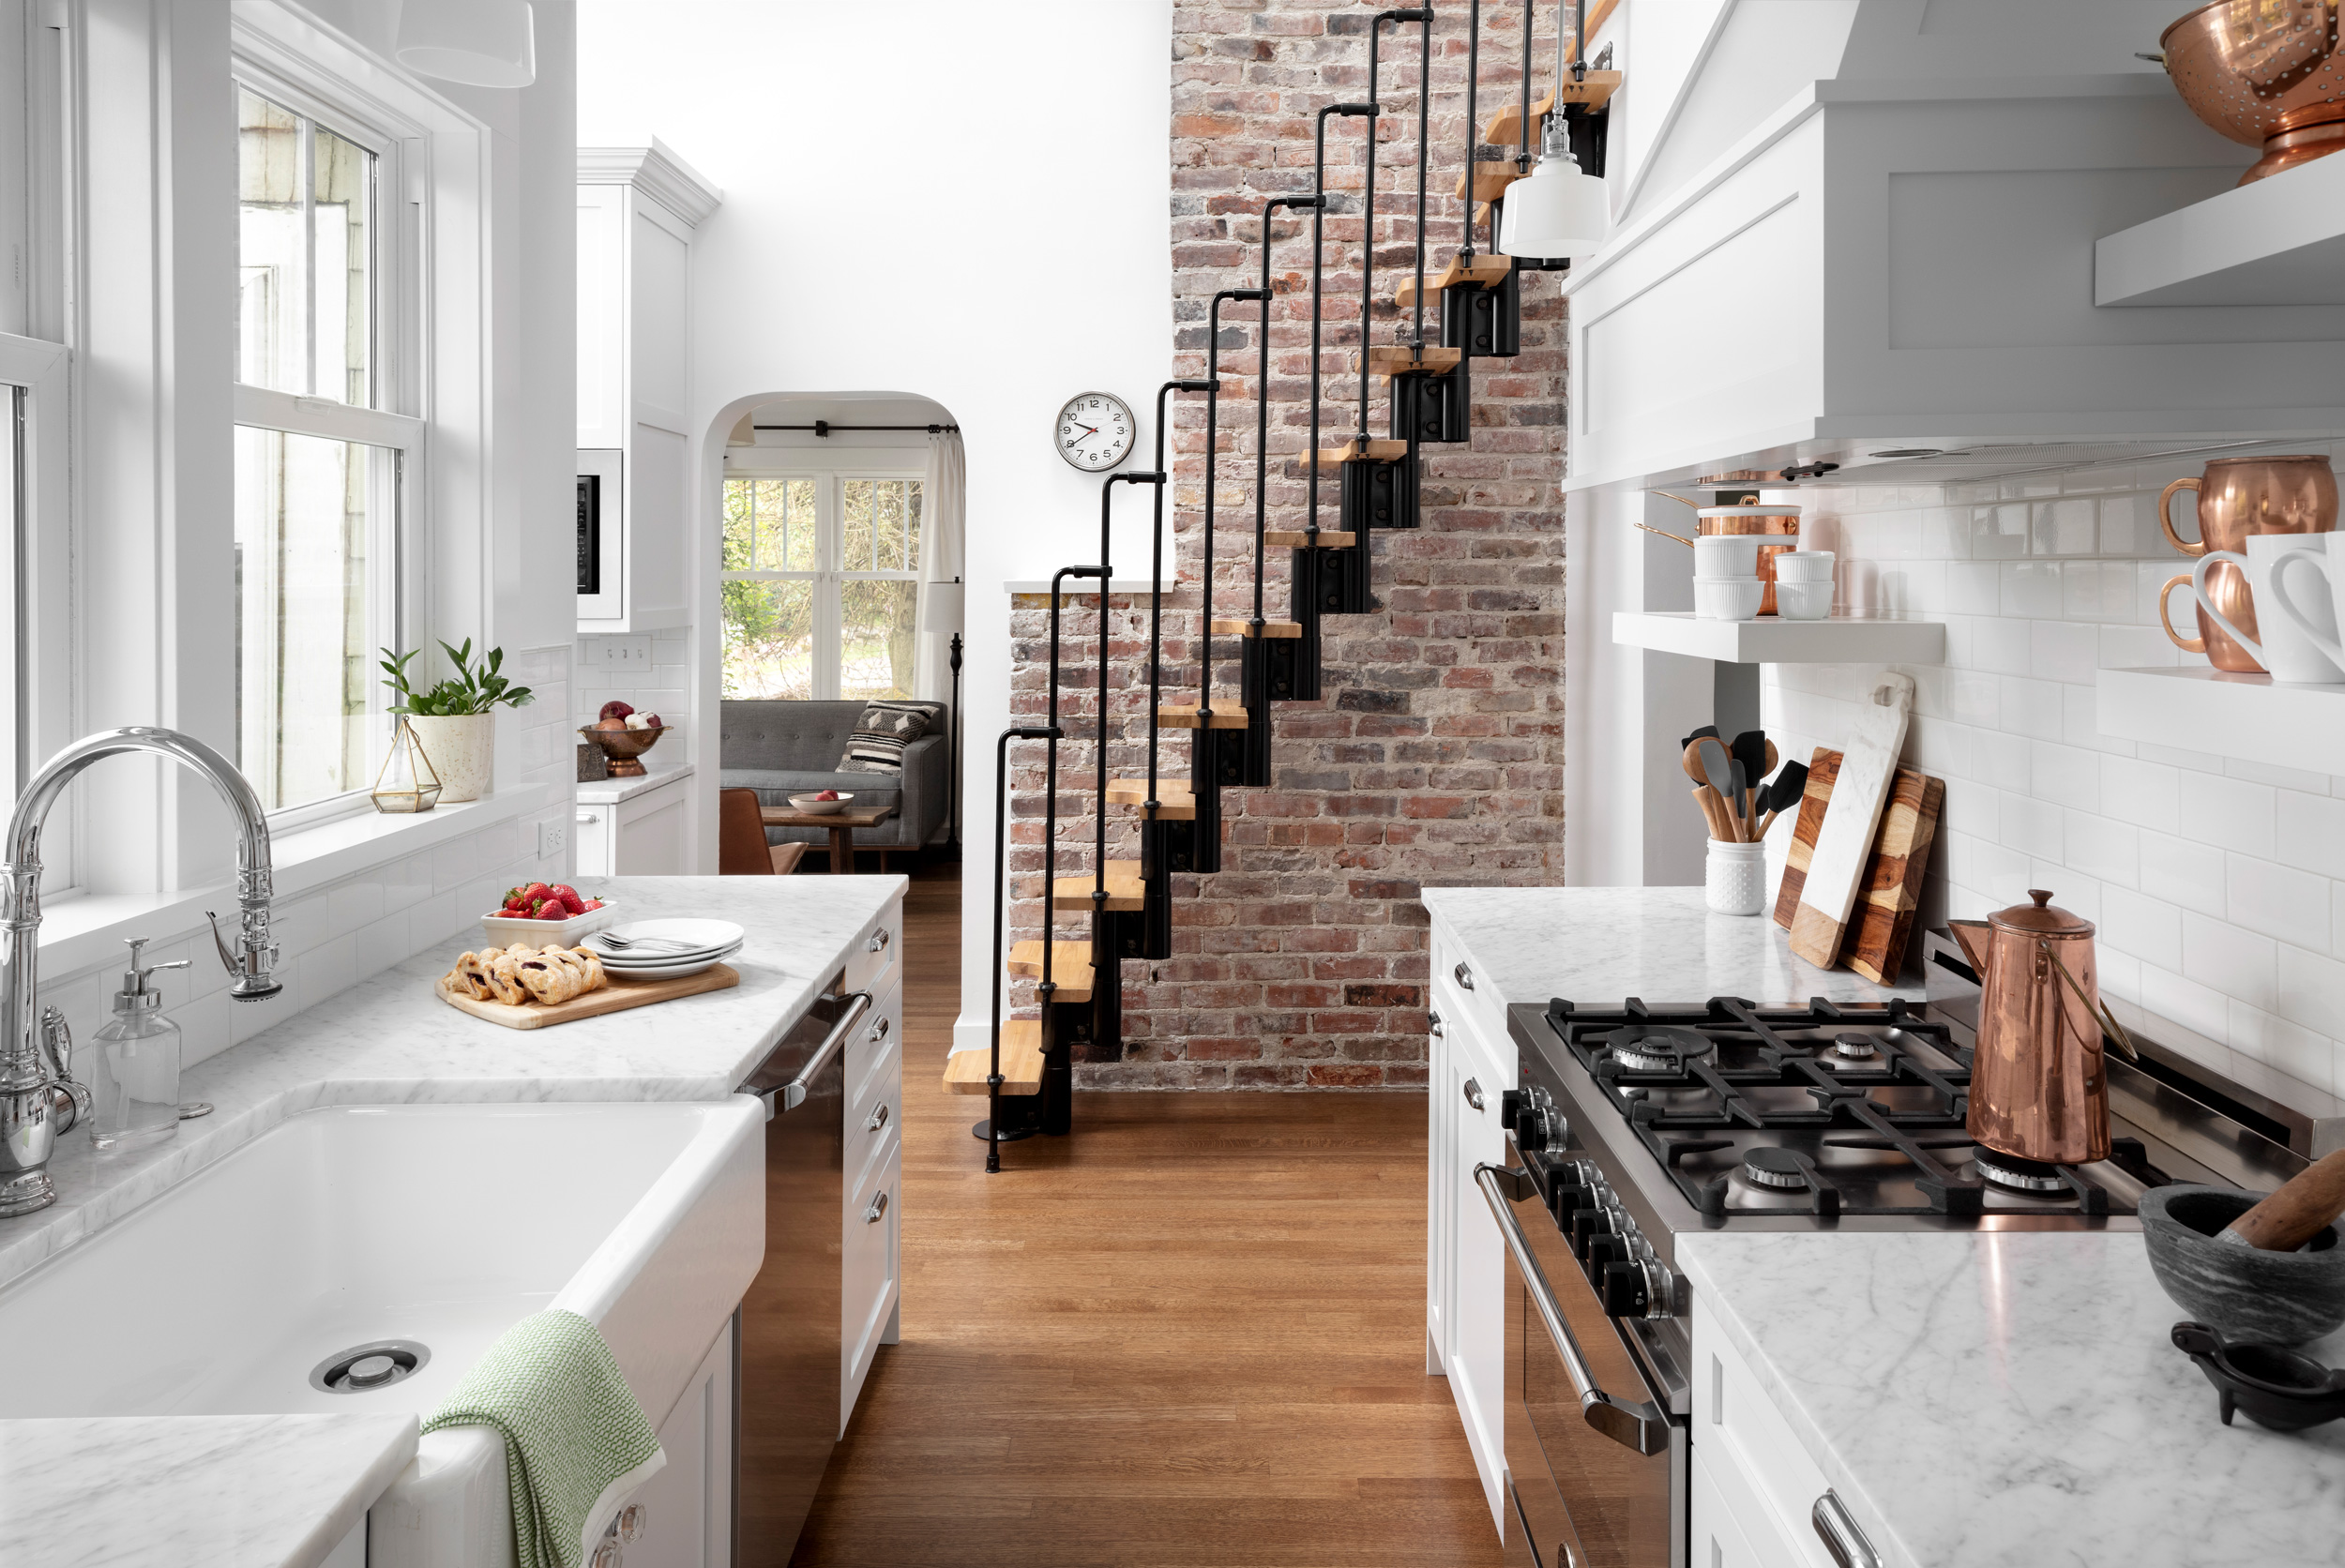 Haller-Lake-traditional-cottage-kitchen-1.jpg